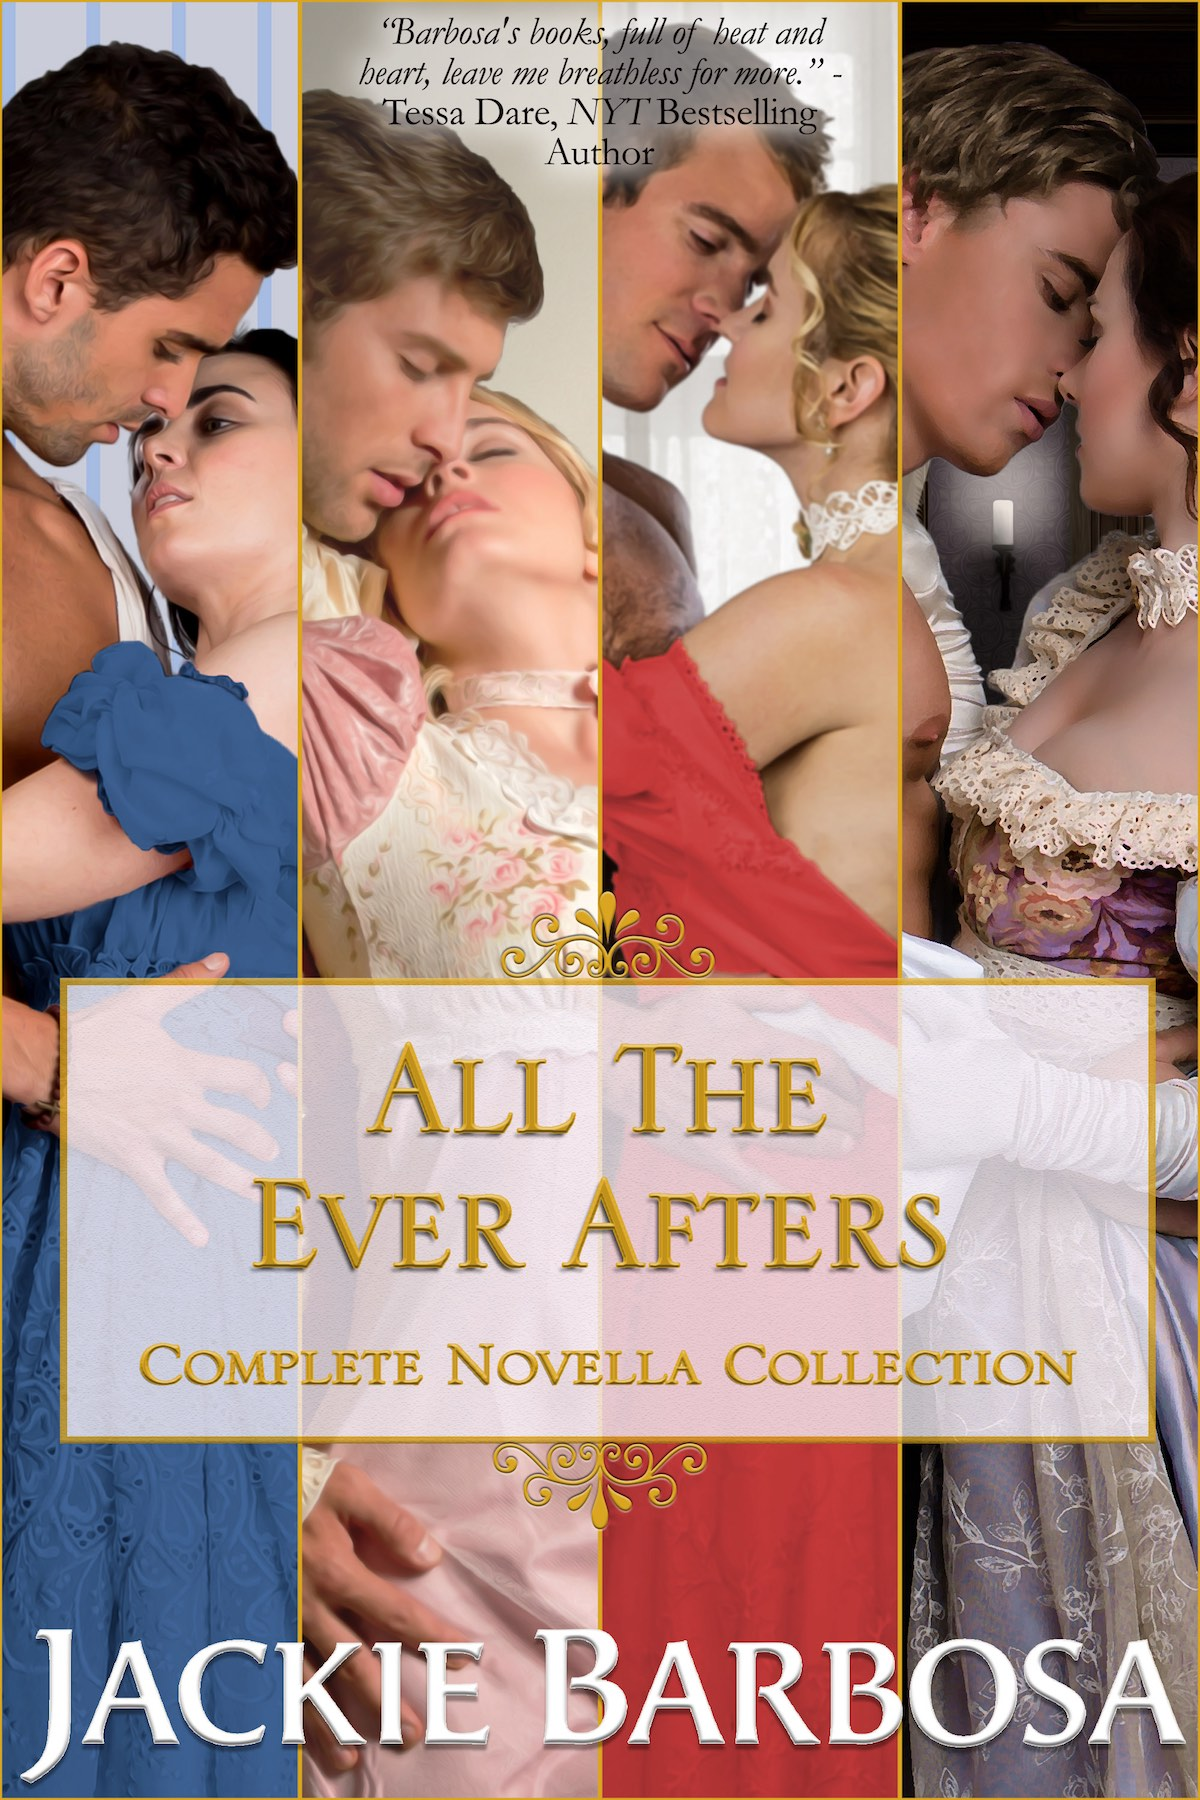 All the Ever Afters by Jackie Barbosa